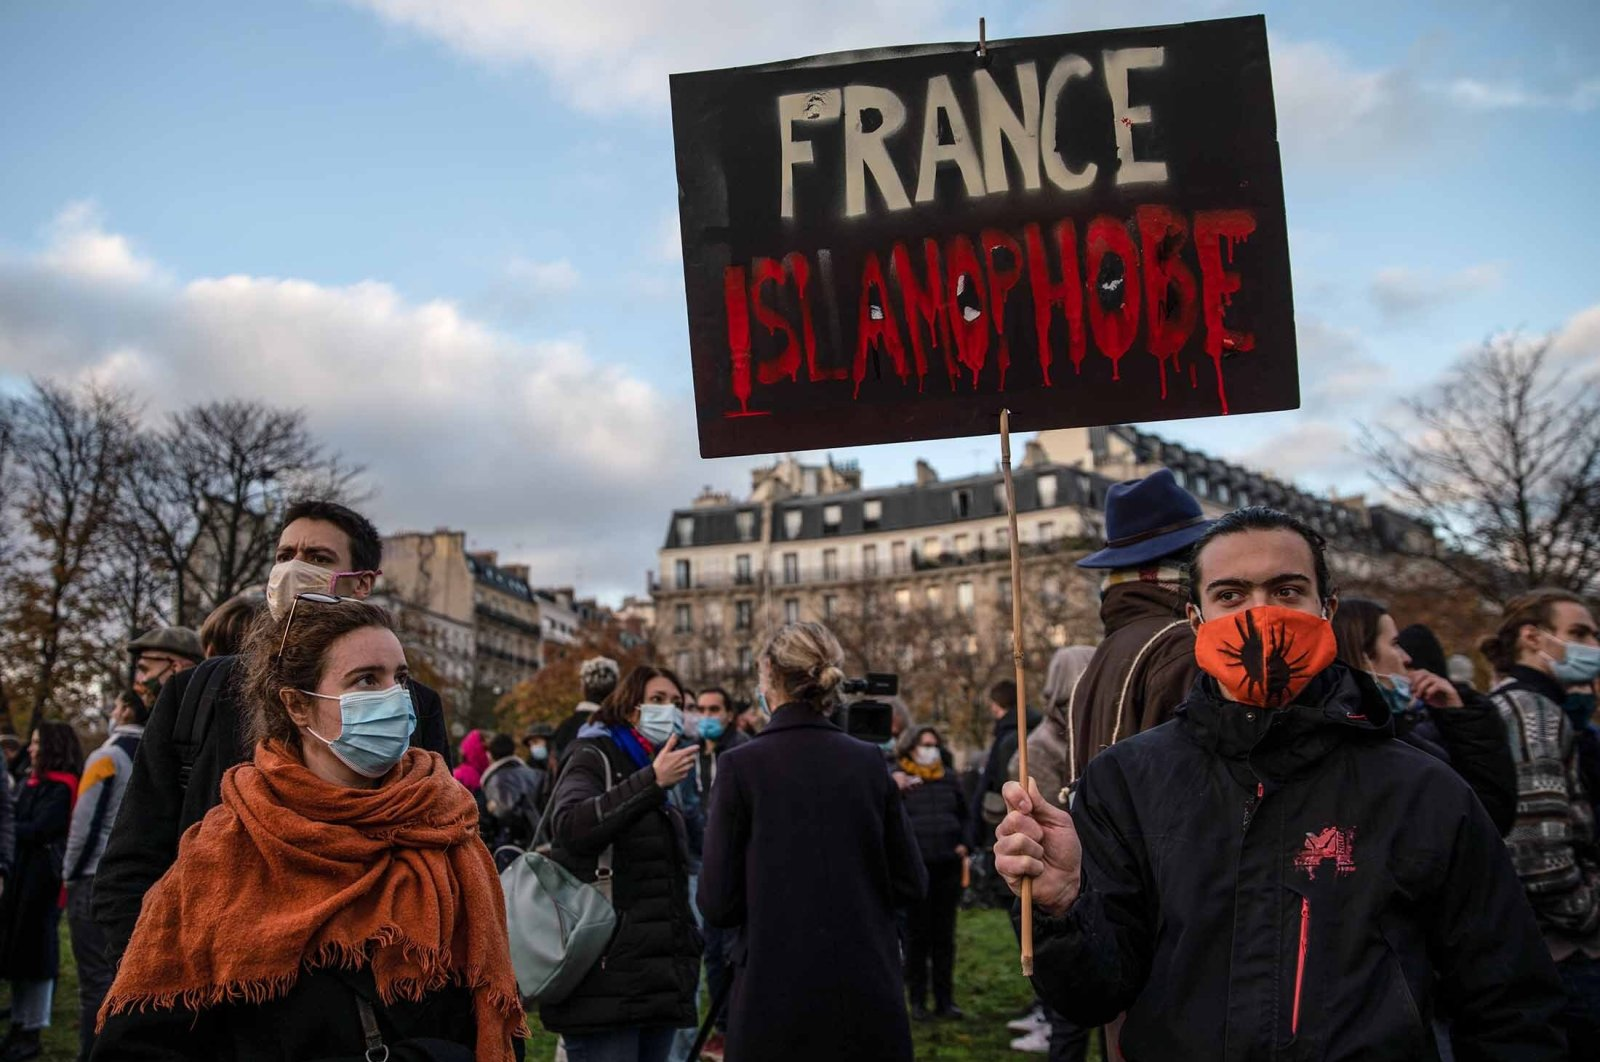 A protestor holds a placard that reads 'France Islamophobe' during a demonstration against the French government's global security bill and restrictions that target Muslim communities, Paris, France, Nov. 21, 2020. (Getty Images)